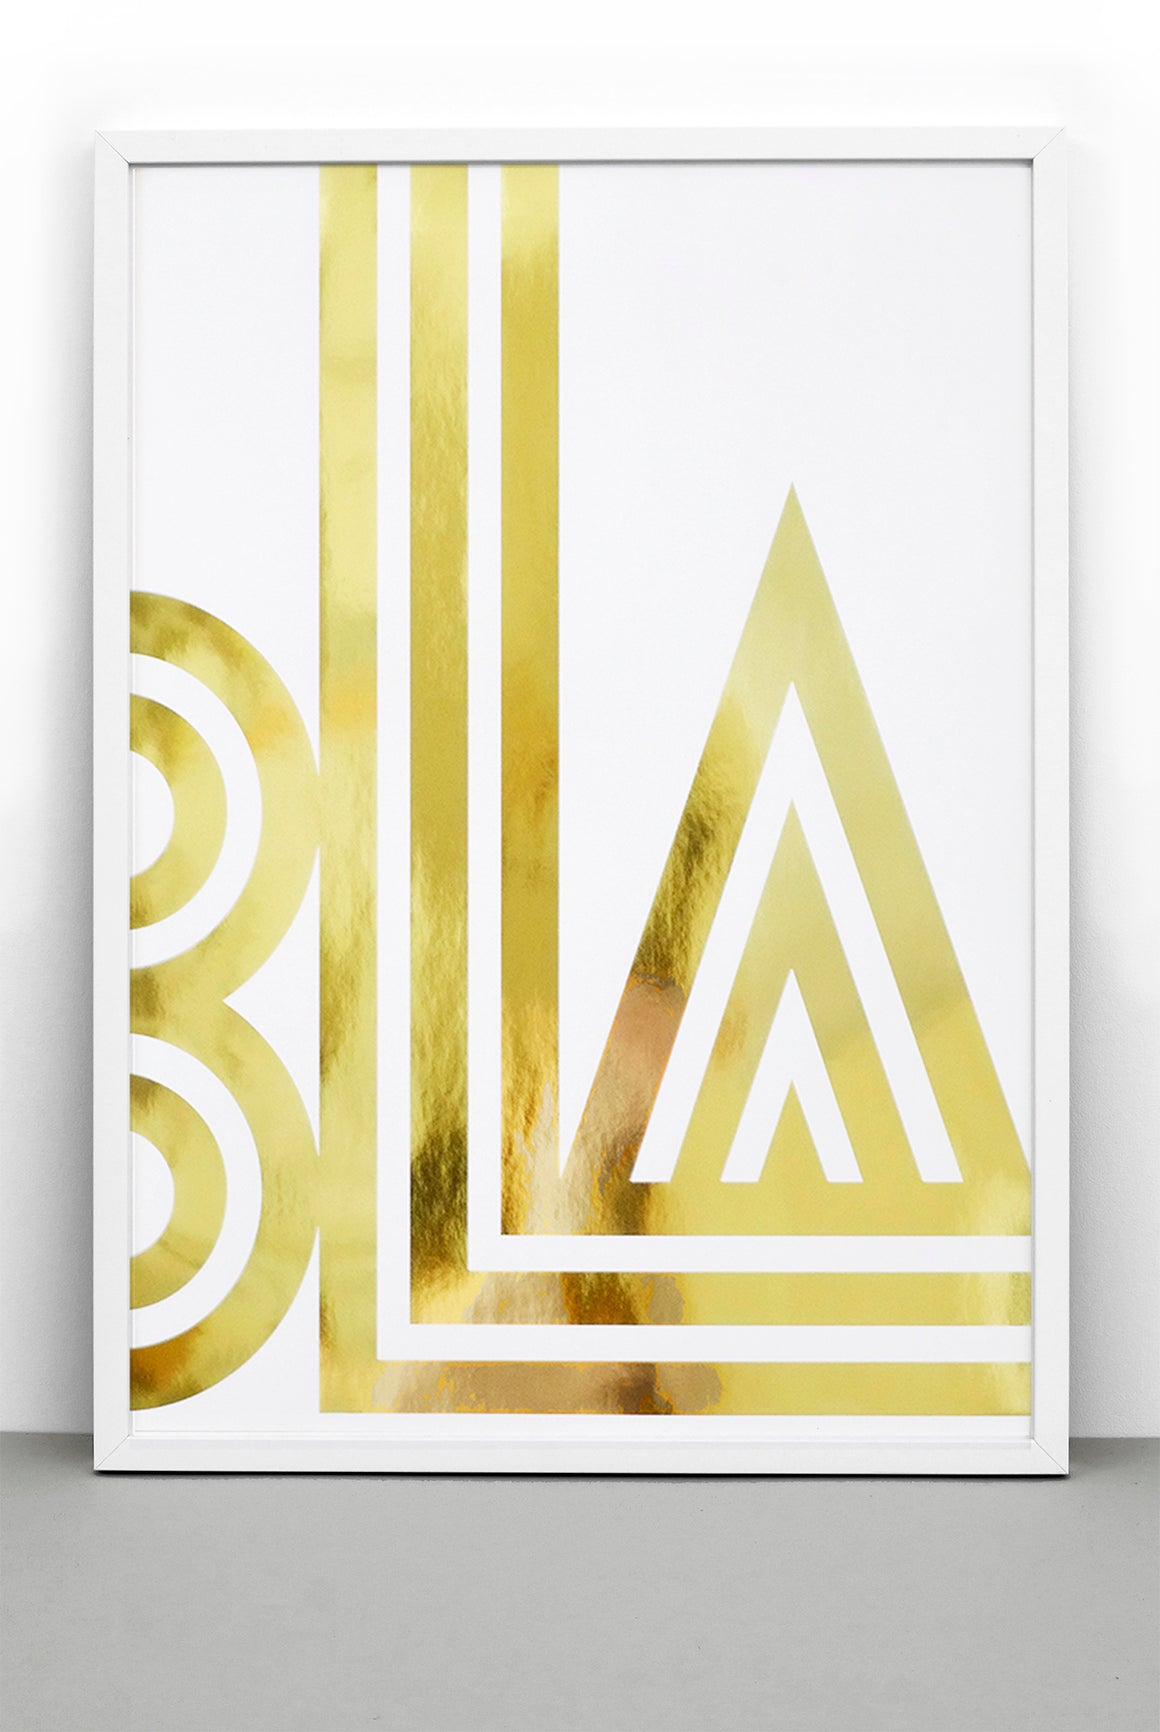 WHOLESALE GOLD FOIL SMALL TALK / BLA PRINT, BOLD TYPOGRAPHIC POSTER